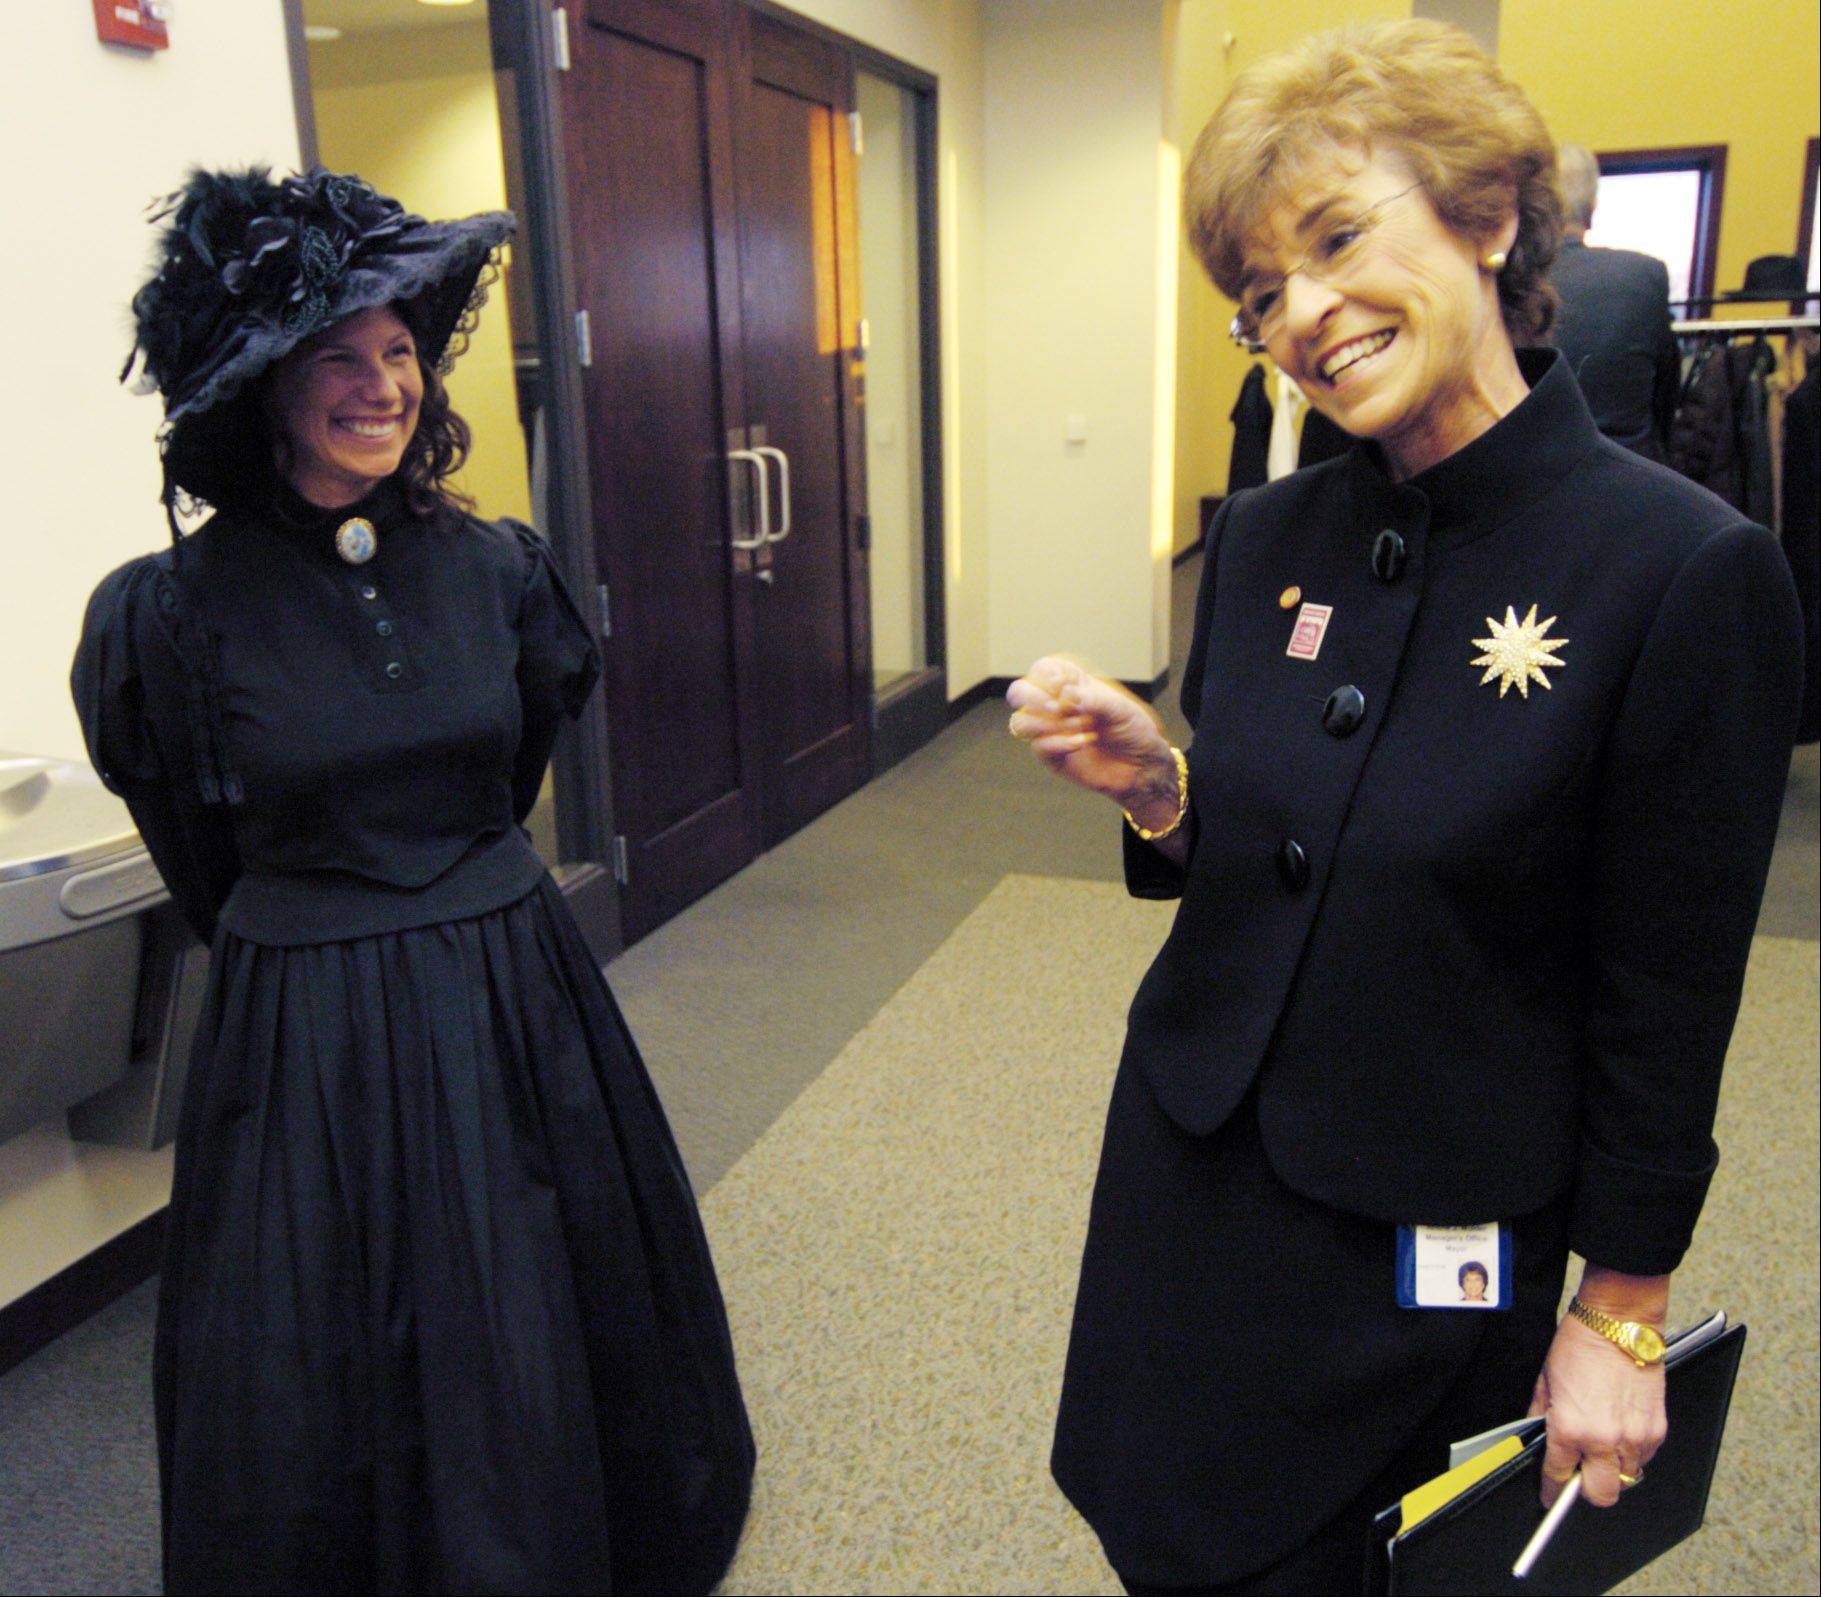 Dawn Walter, left, a volunteer at the Arlington Heights Historical Museum, shows Village President Arlene Mulder her 1880s outfit.